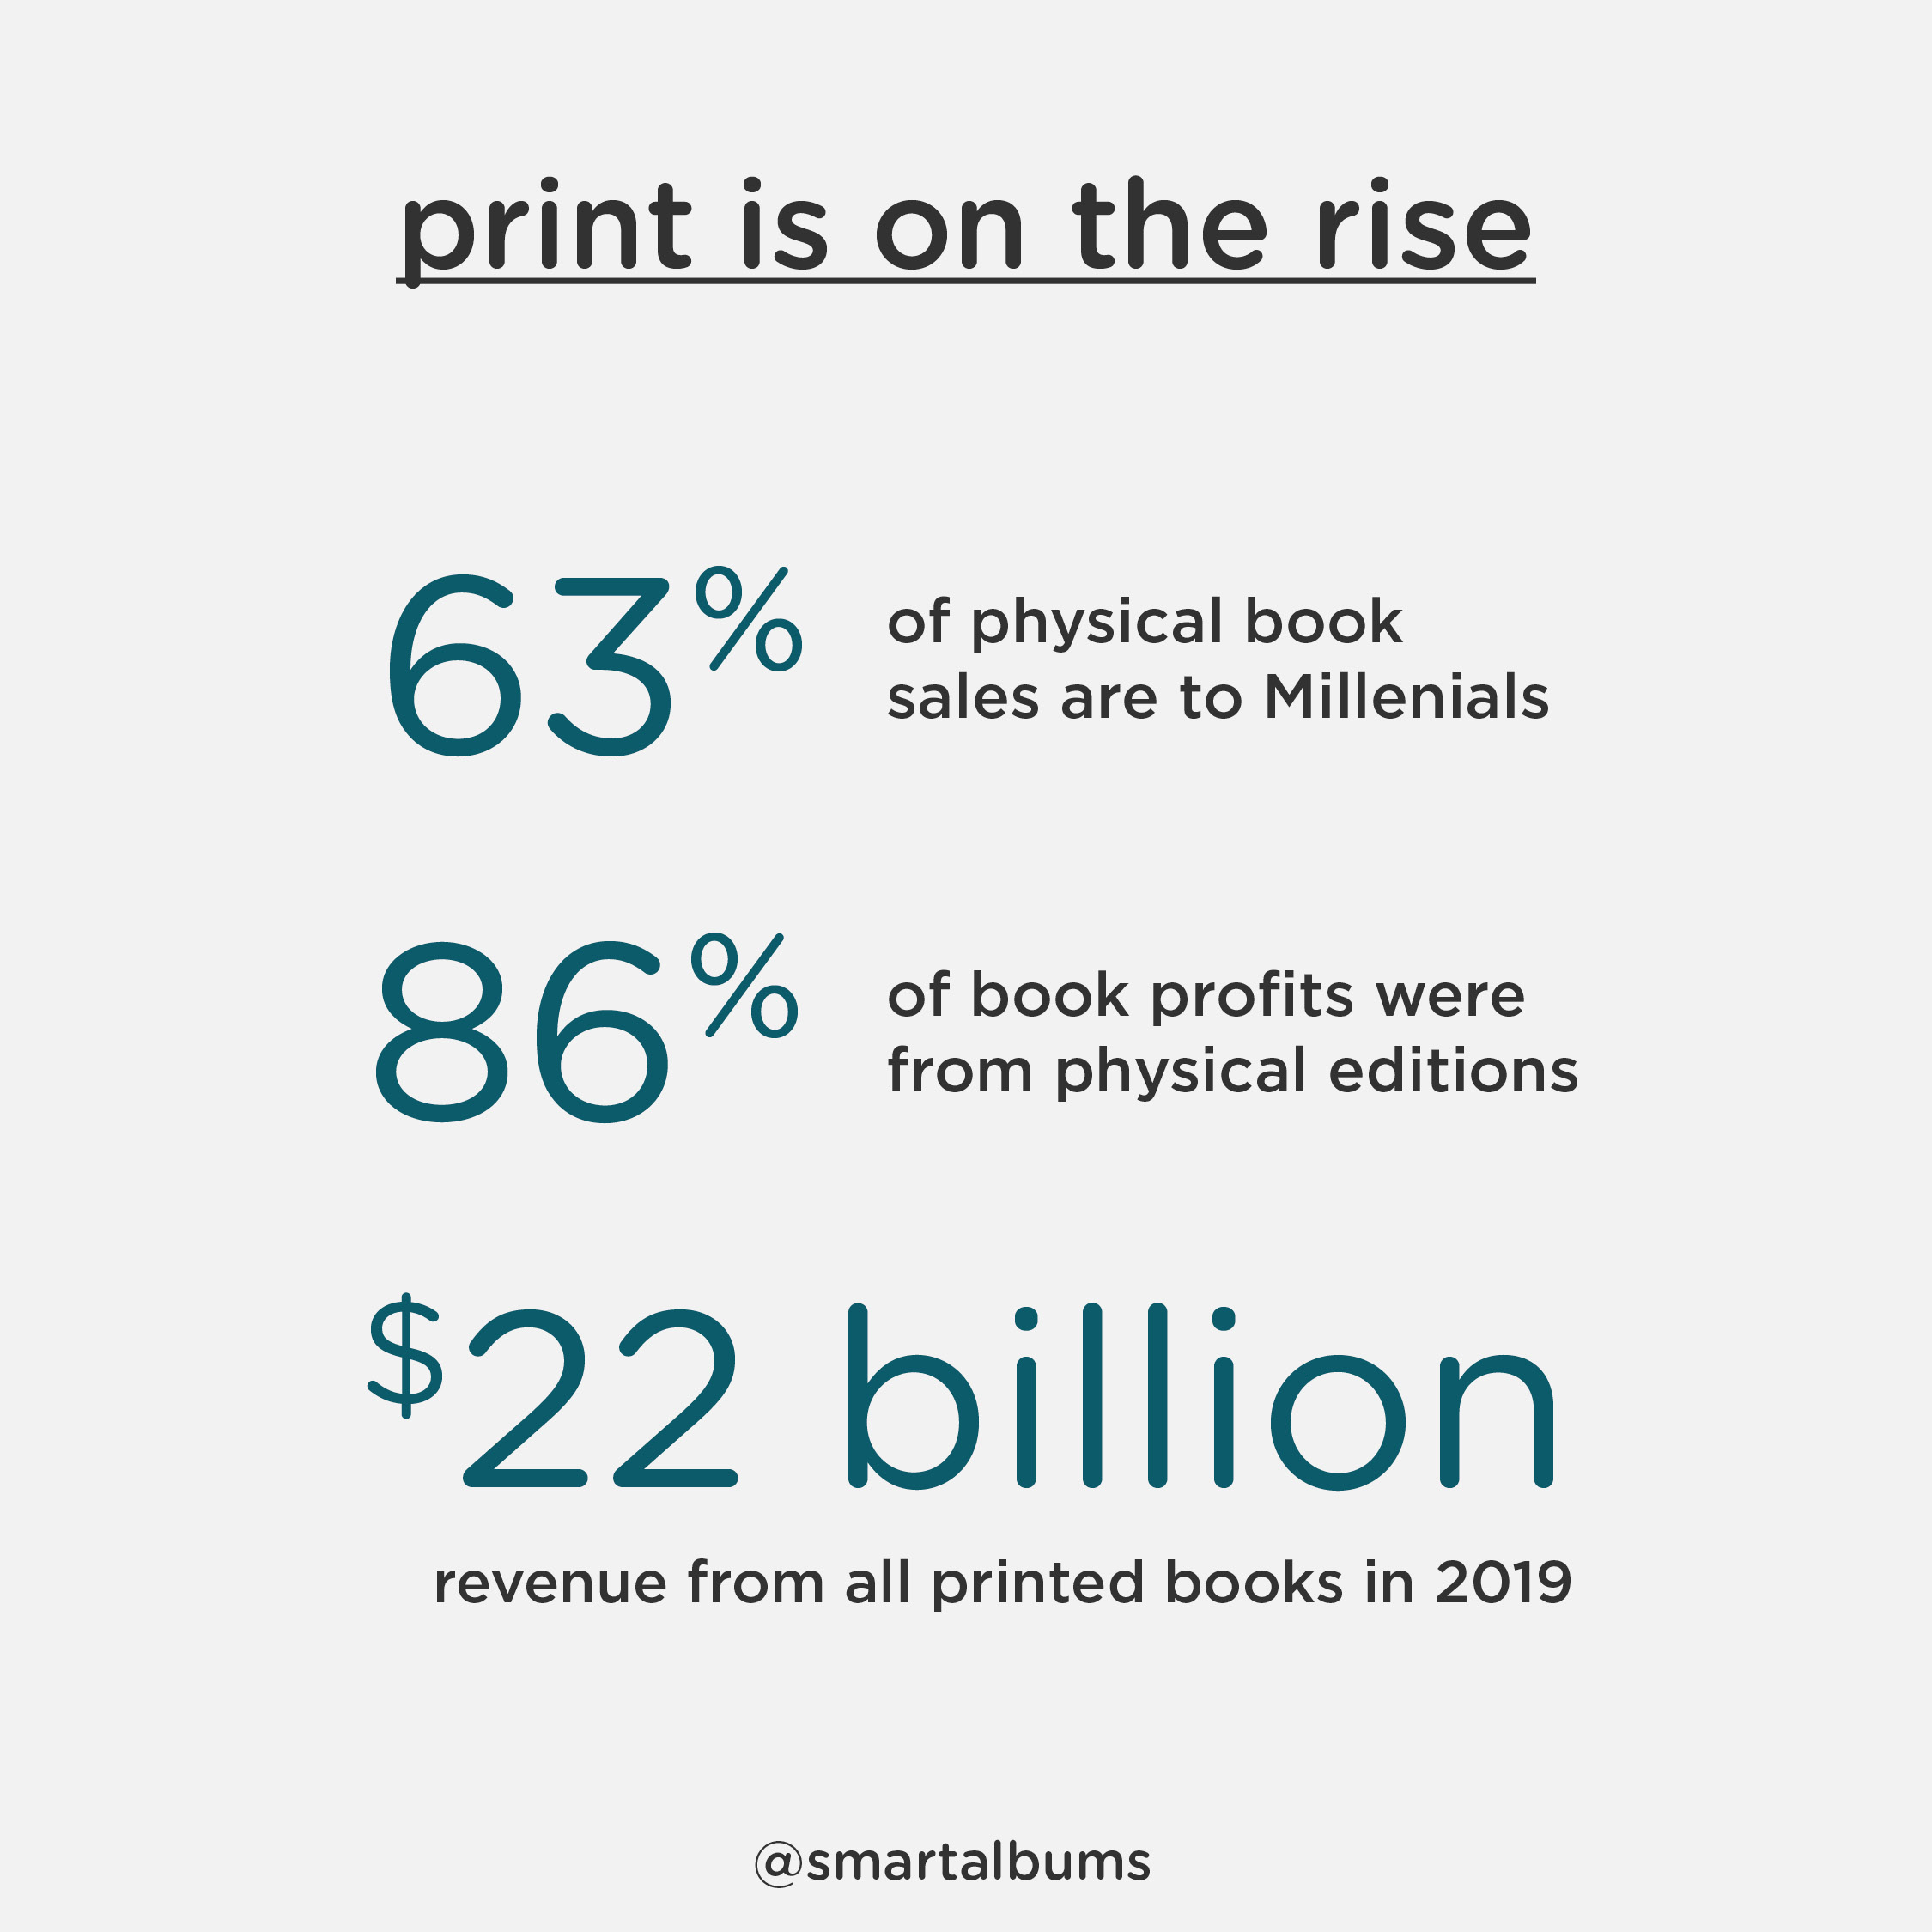 Print is on the rise again with millenials making up 63% of the market